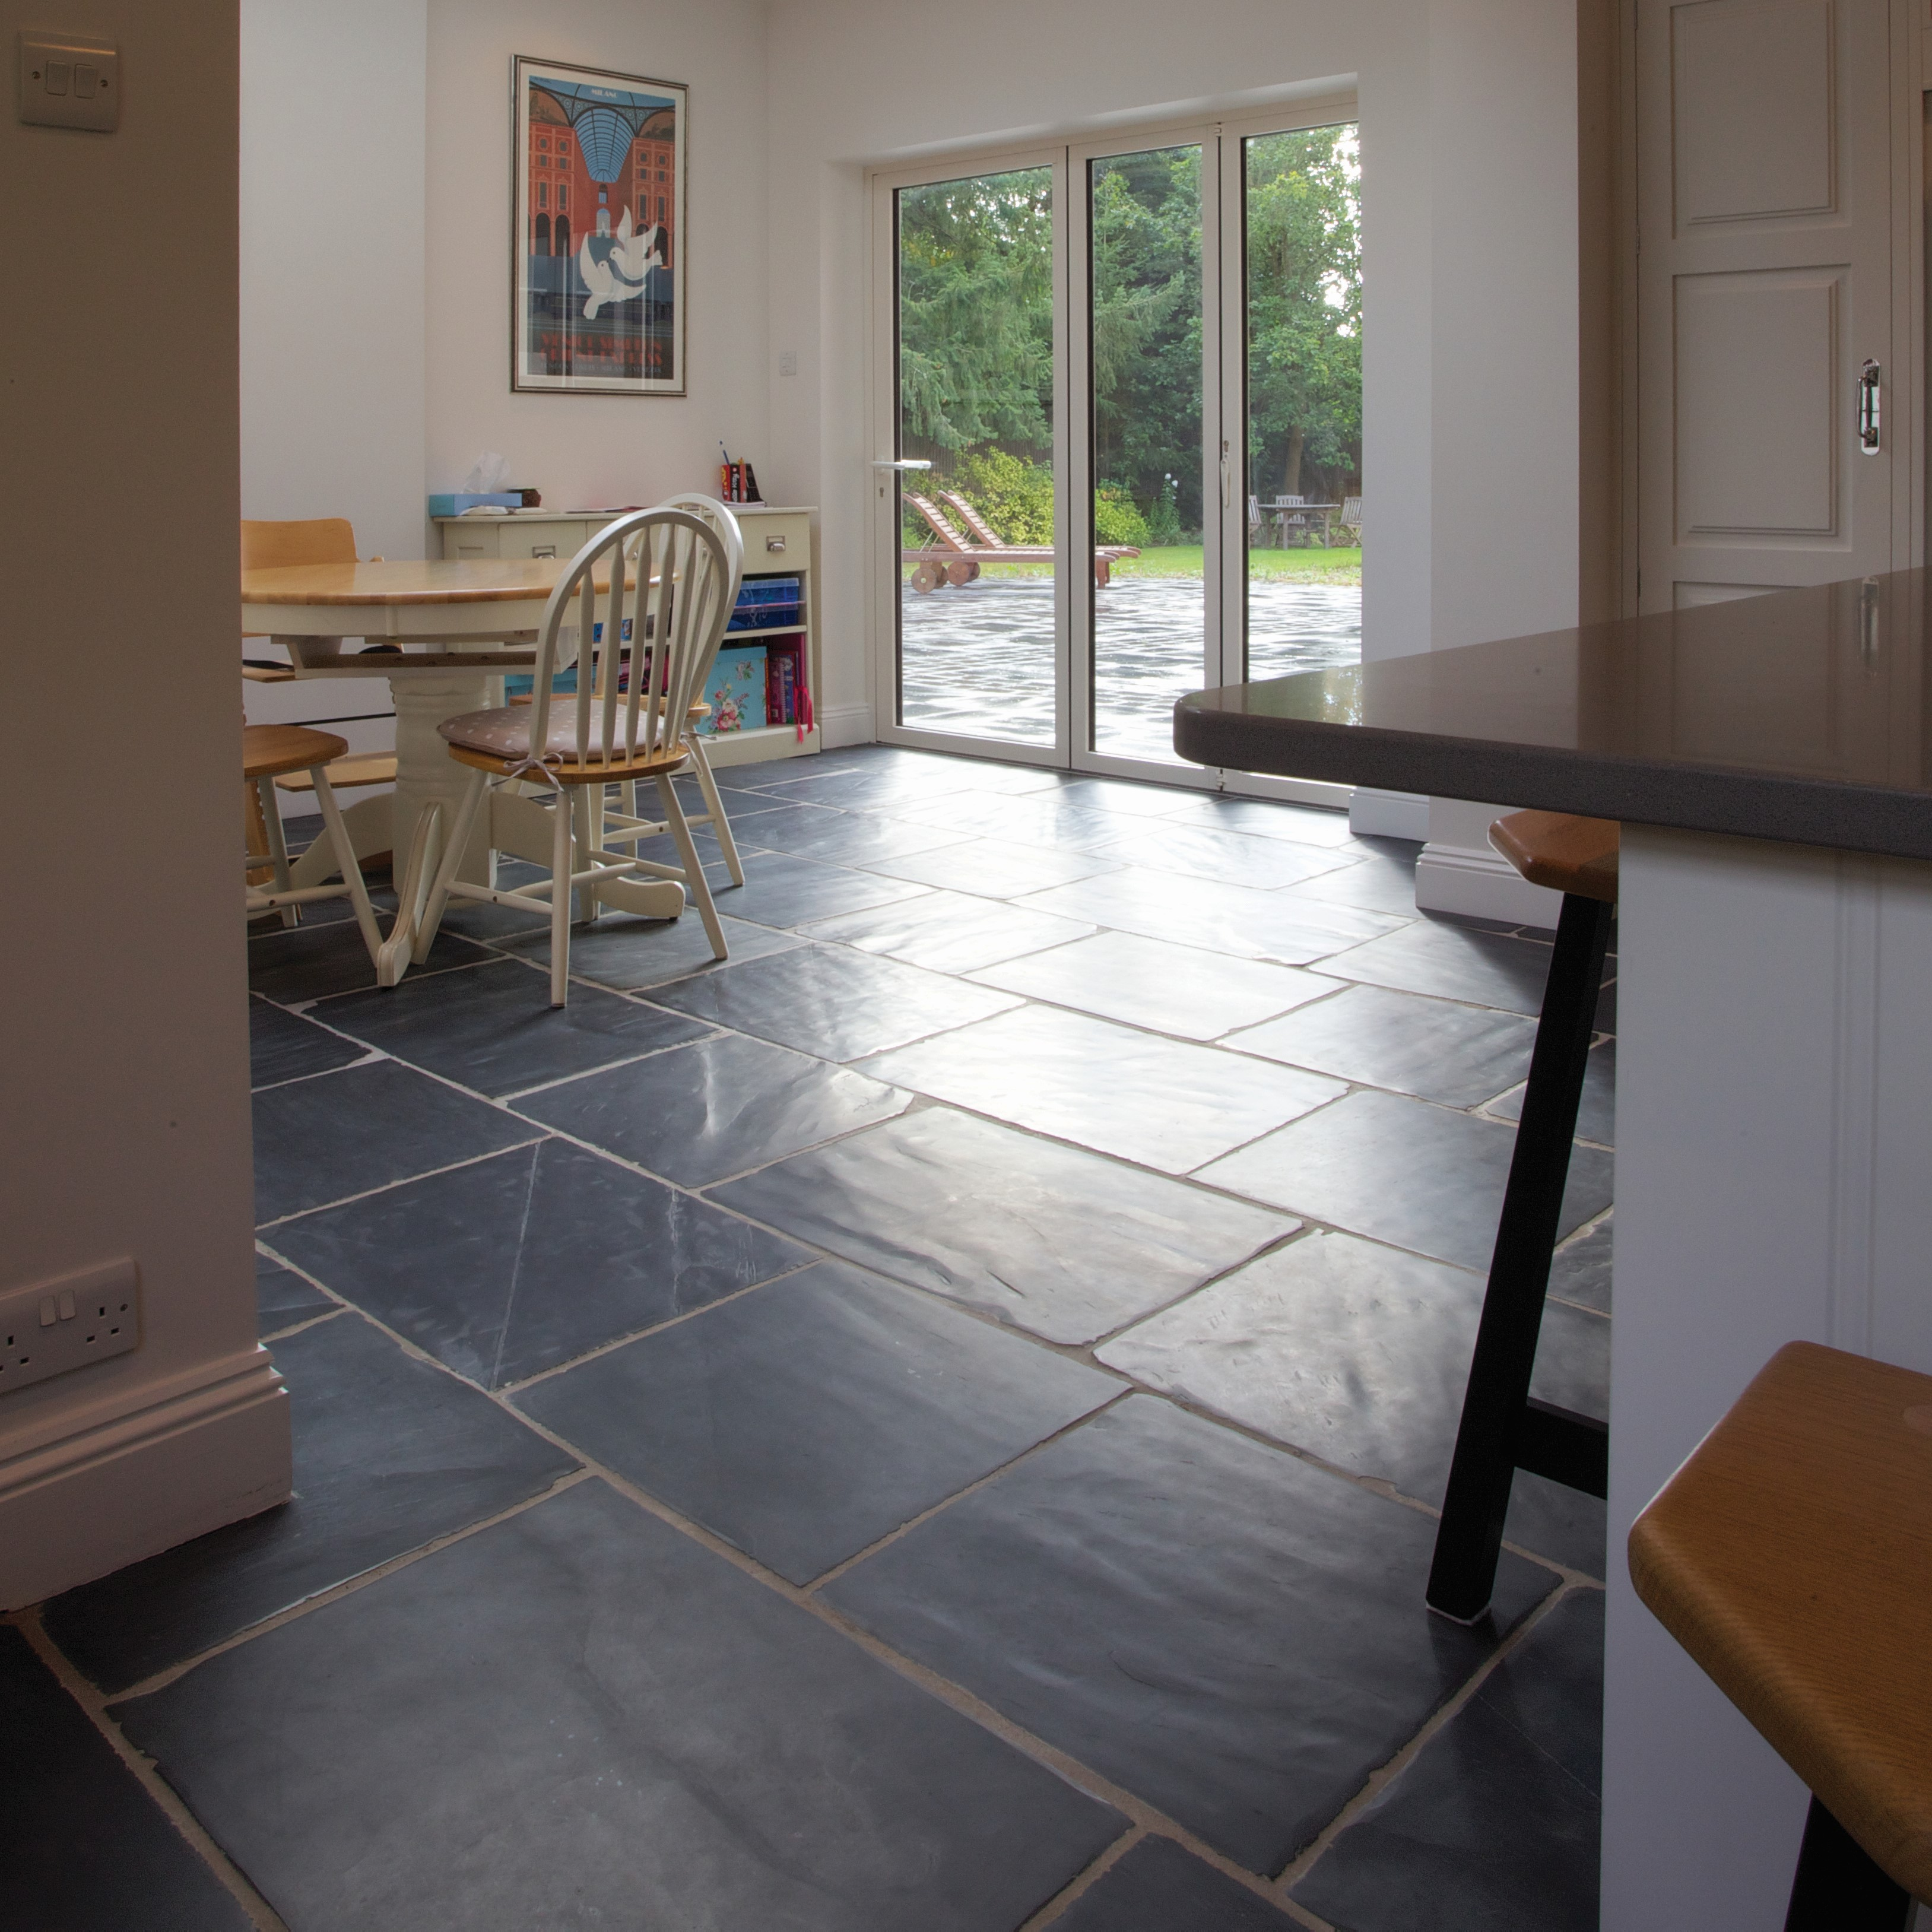 Kitchen Tiles Edinburgh: Ca' Pietra Flagstones, Shepton (worn)